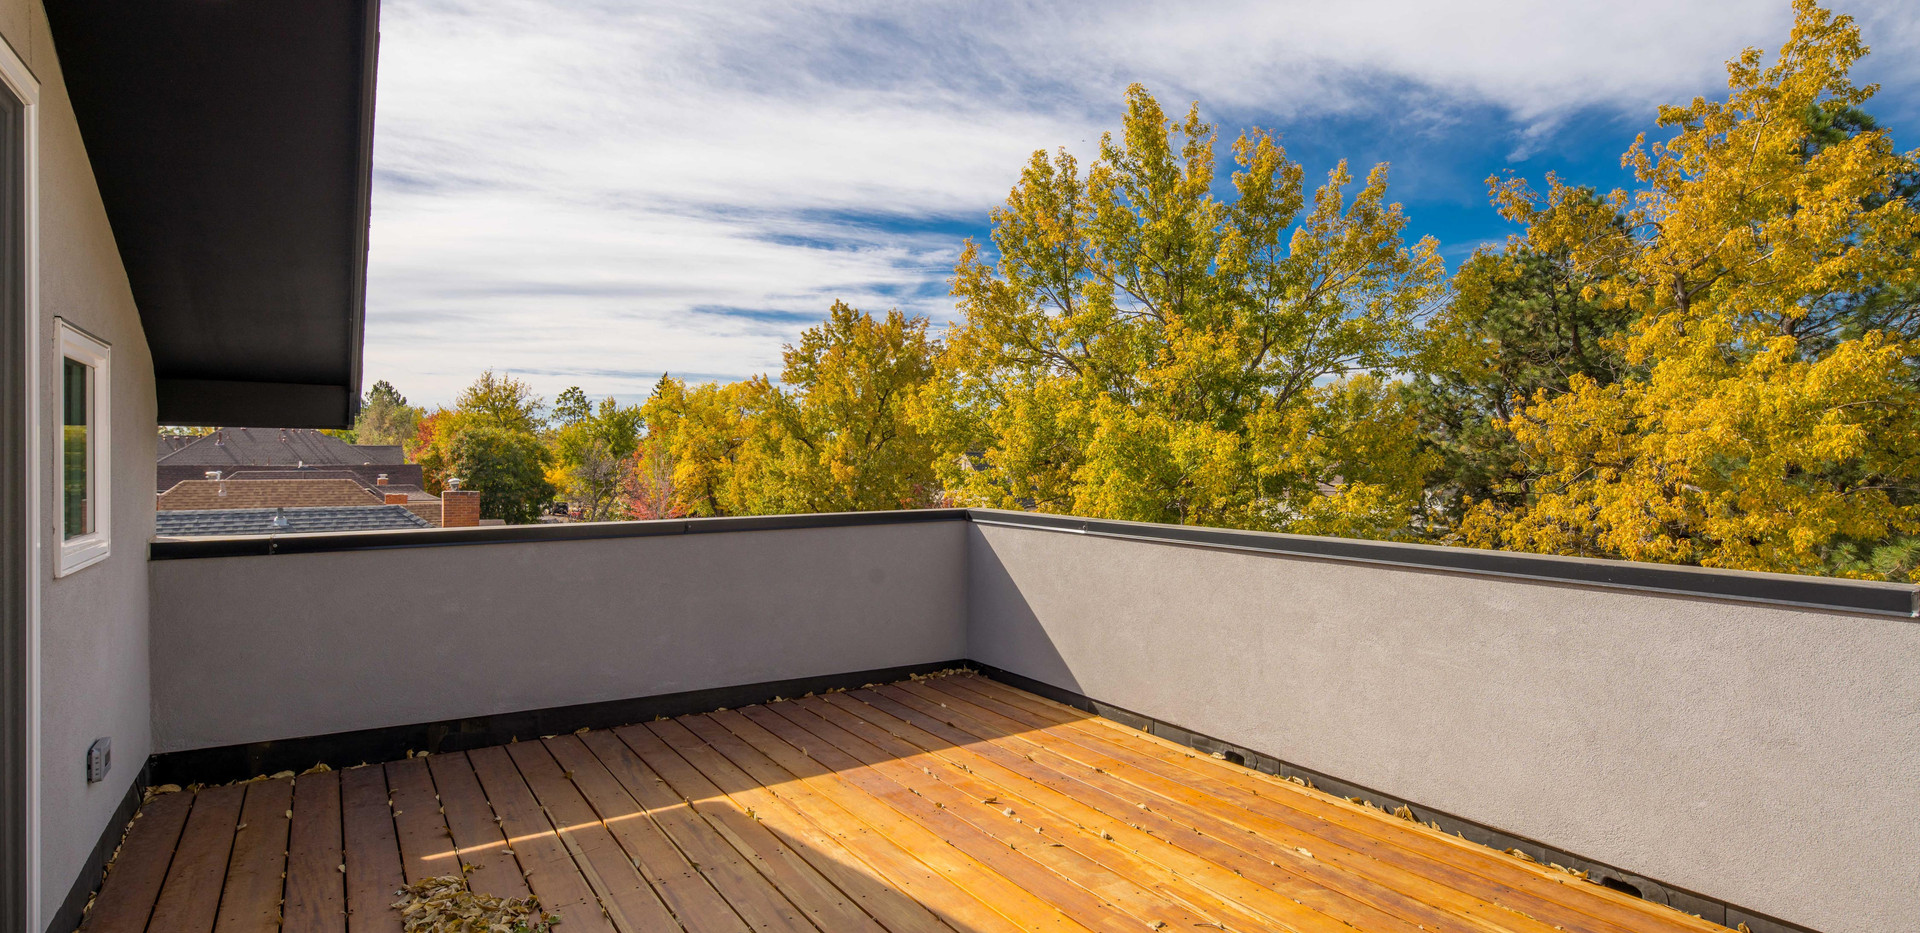 922 S Clarkson St-print-044-048-Rooftop